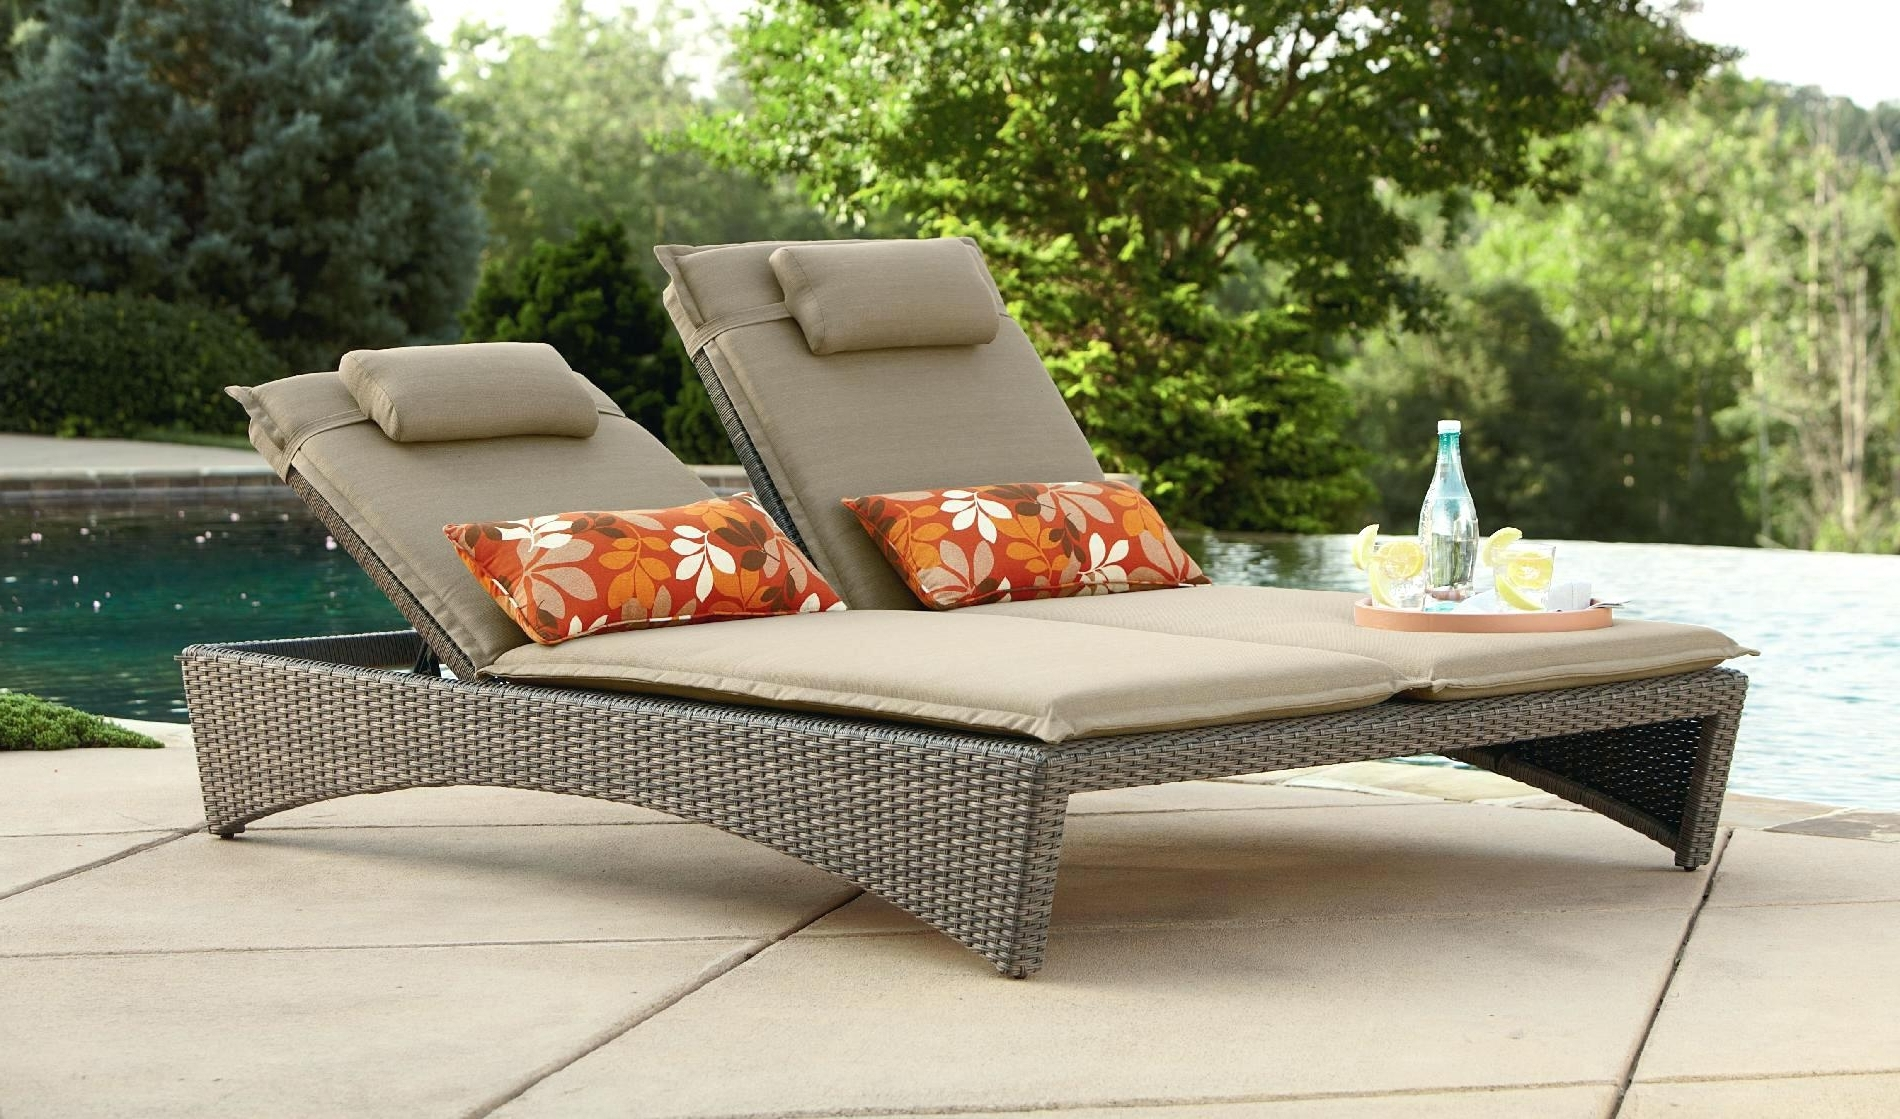 Chaise Lounge Chairs For Outdoor In Well Liked Outdoor Chaise Lounge Chairs Under 100 Awesome Chair For Two (View 5 of 15)